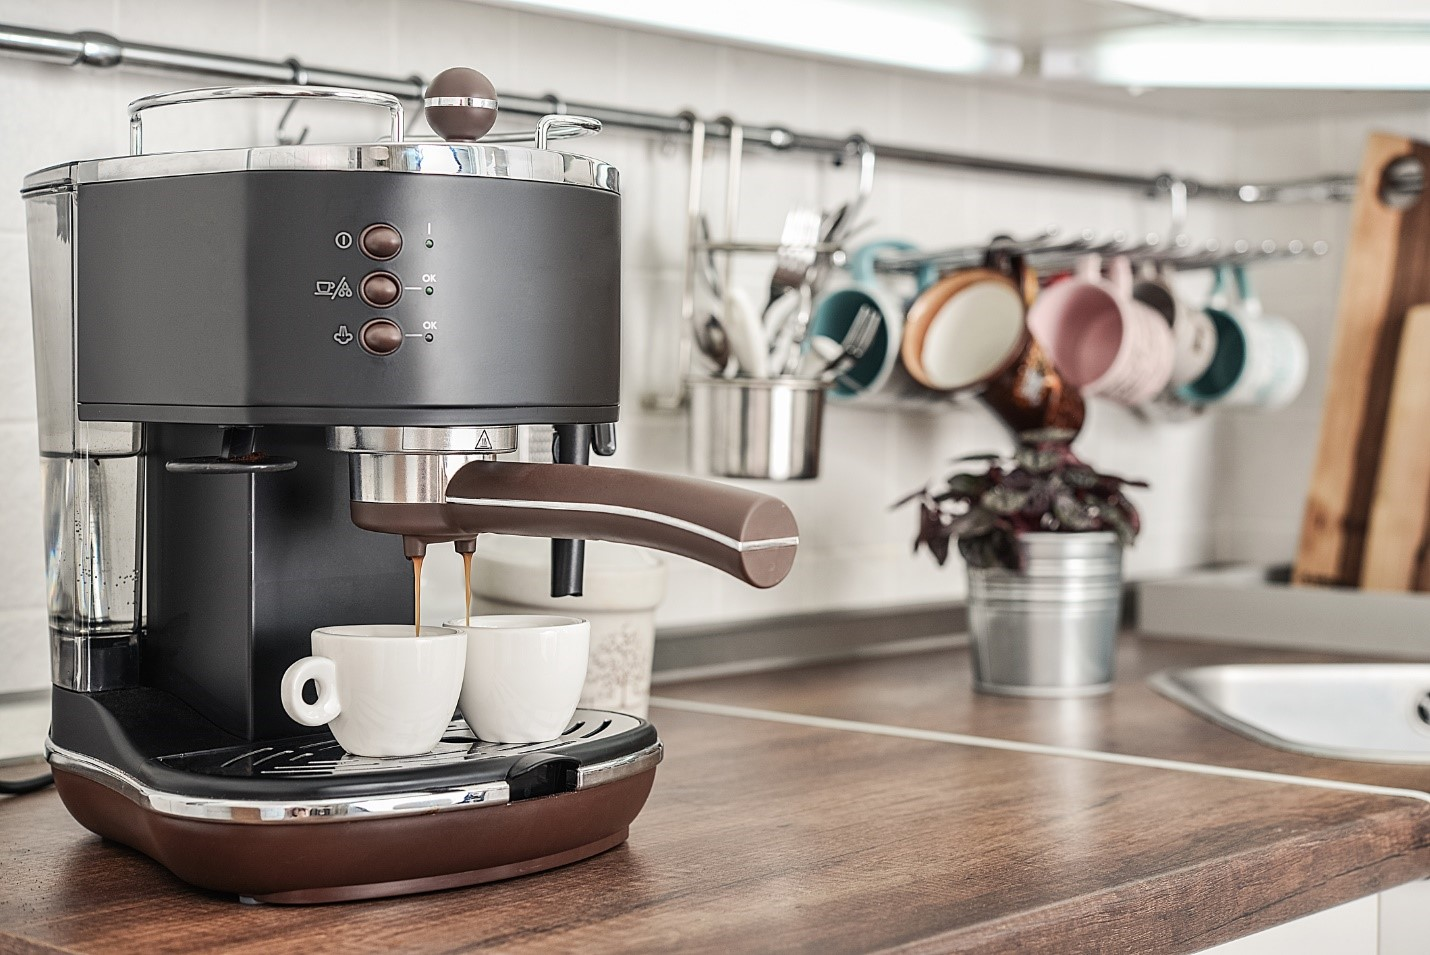 HOW TO USE ALL-IN-ONE COFFEE MACHINE